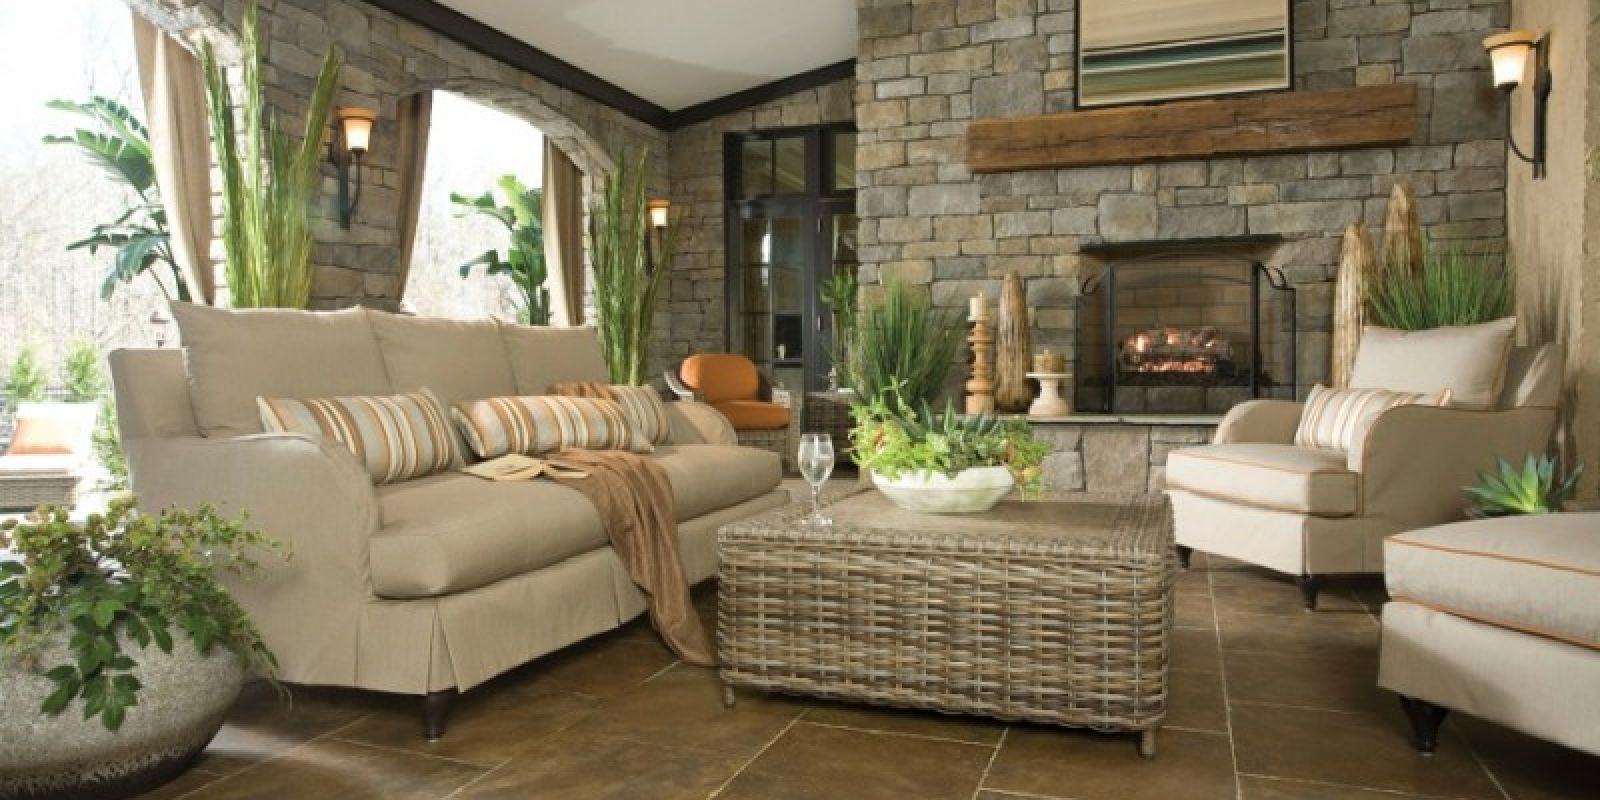 Outdoor Patio Design Specialist | American Casual Living on Porch & Patio Casual Living id=15127